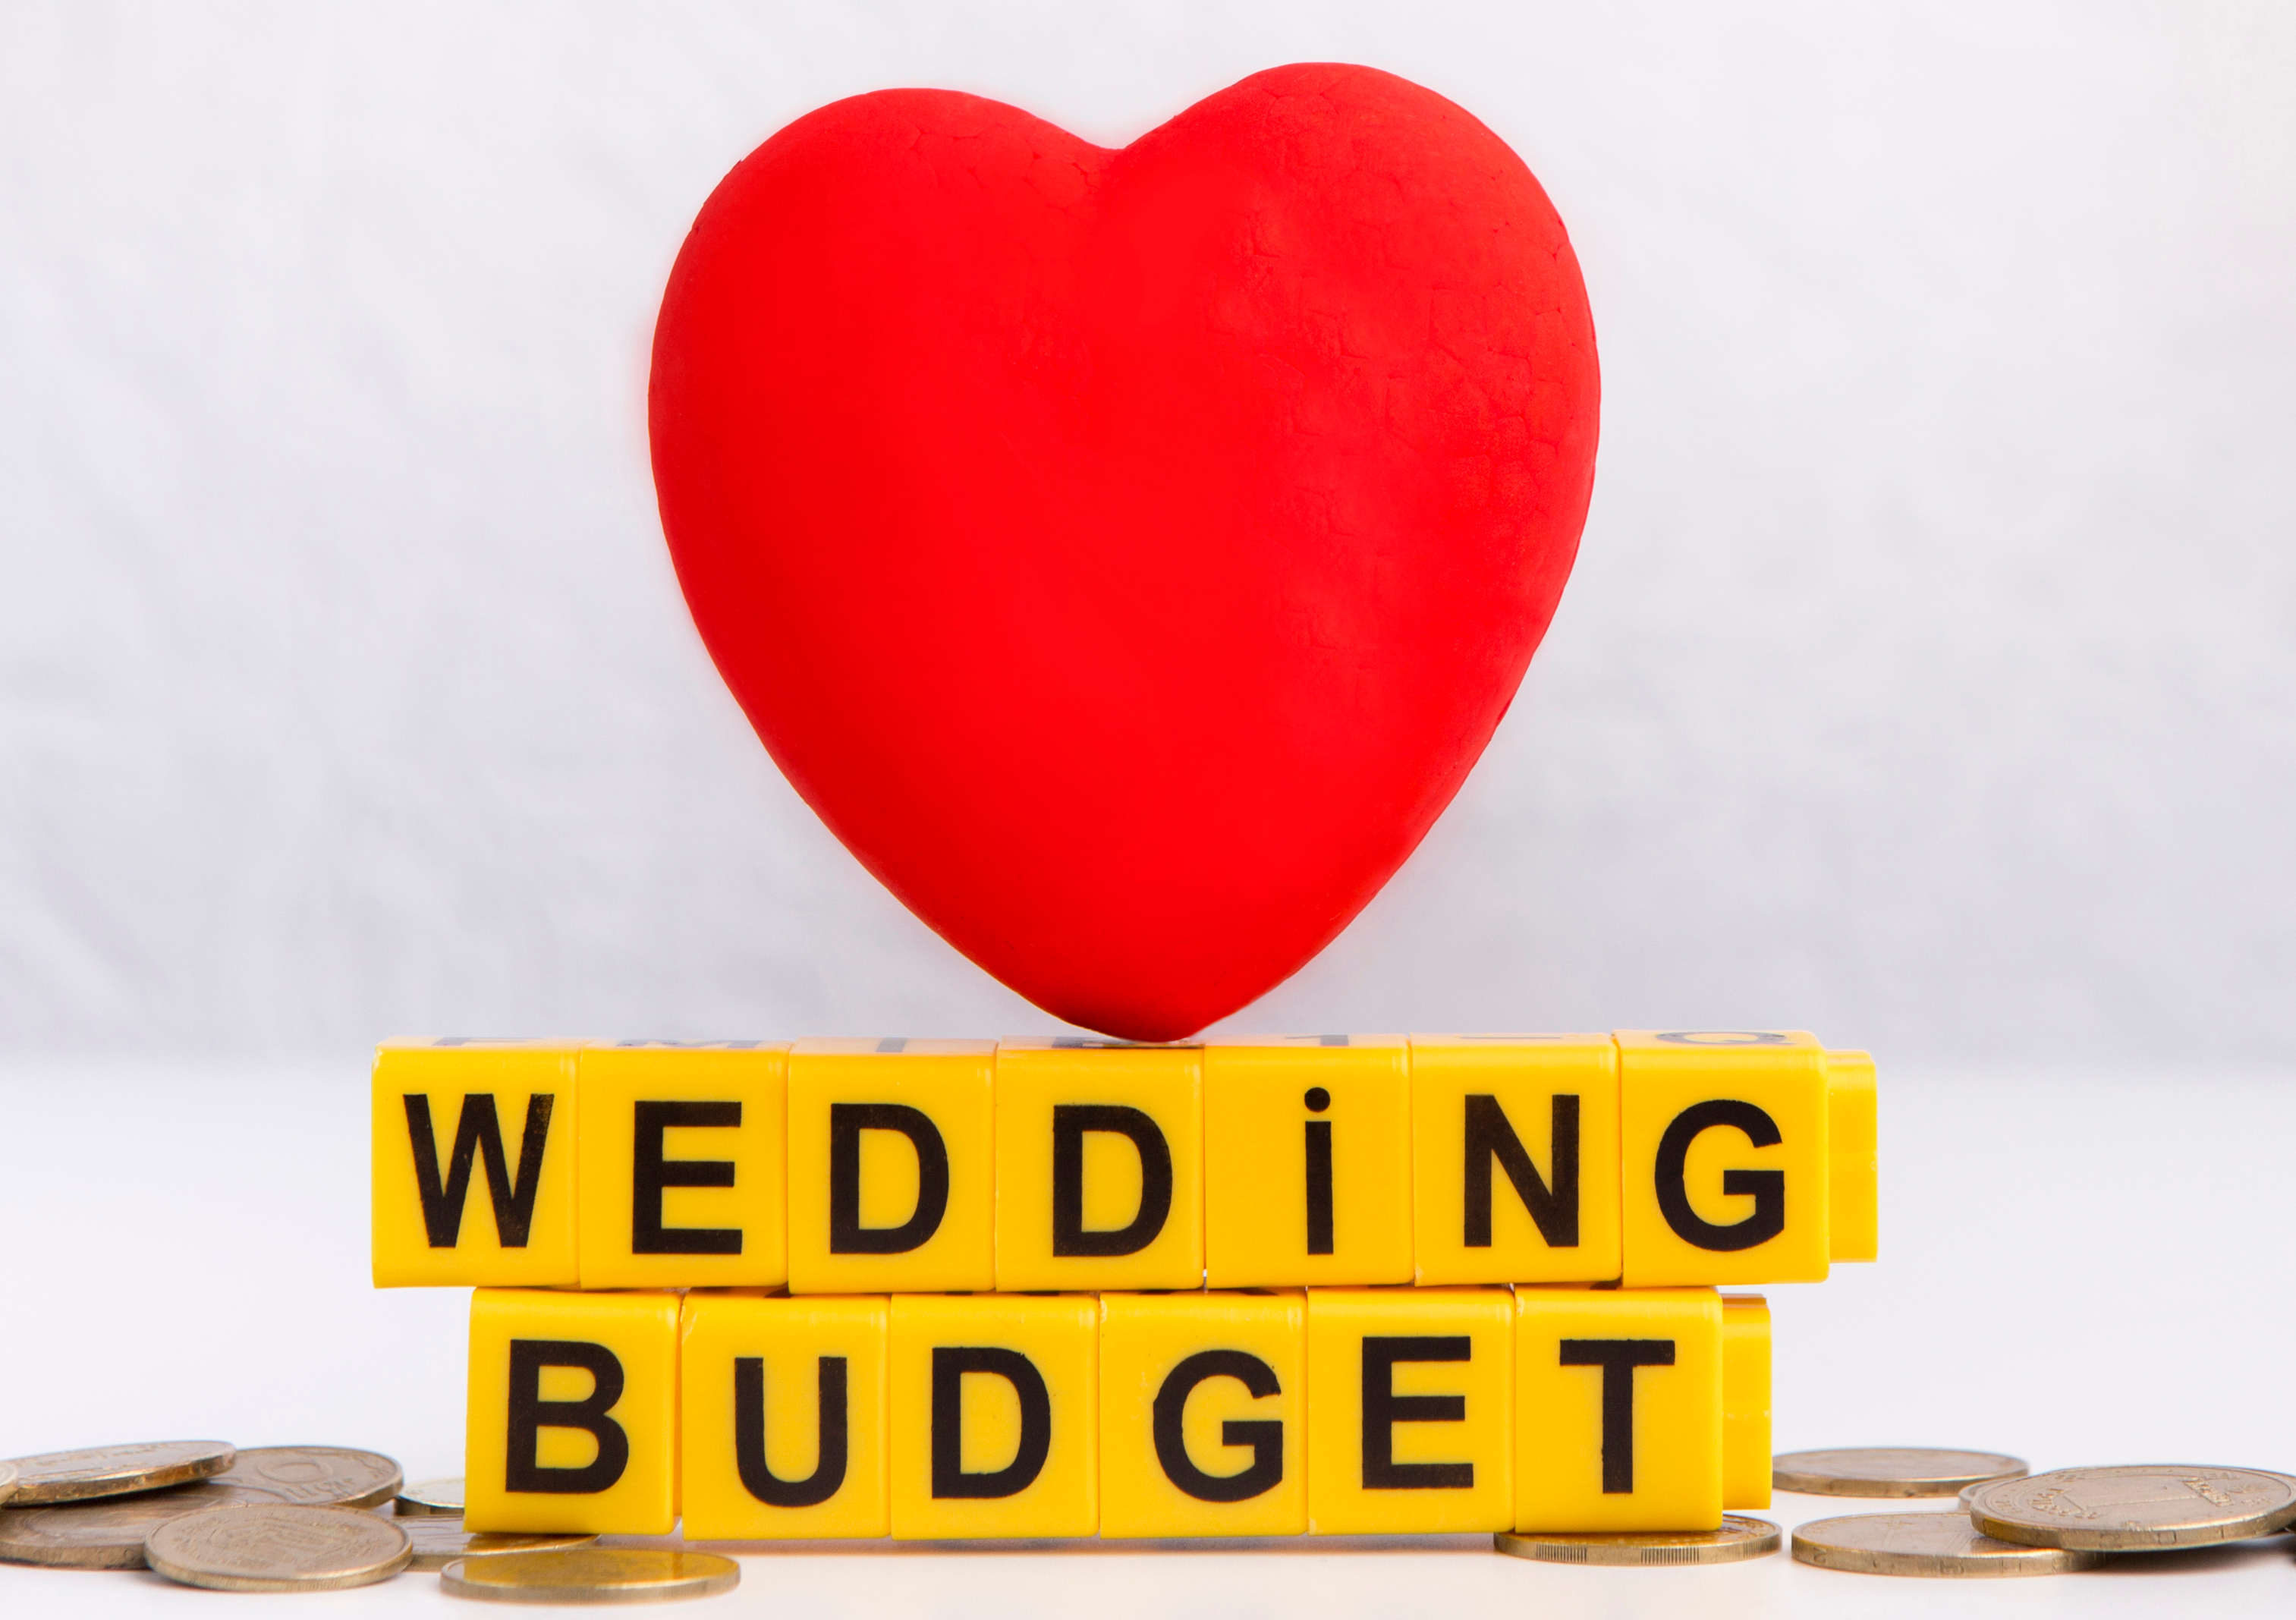 Wedding Budget Tips: Where Does AV Fit In?